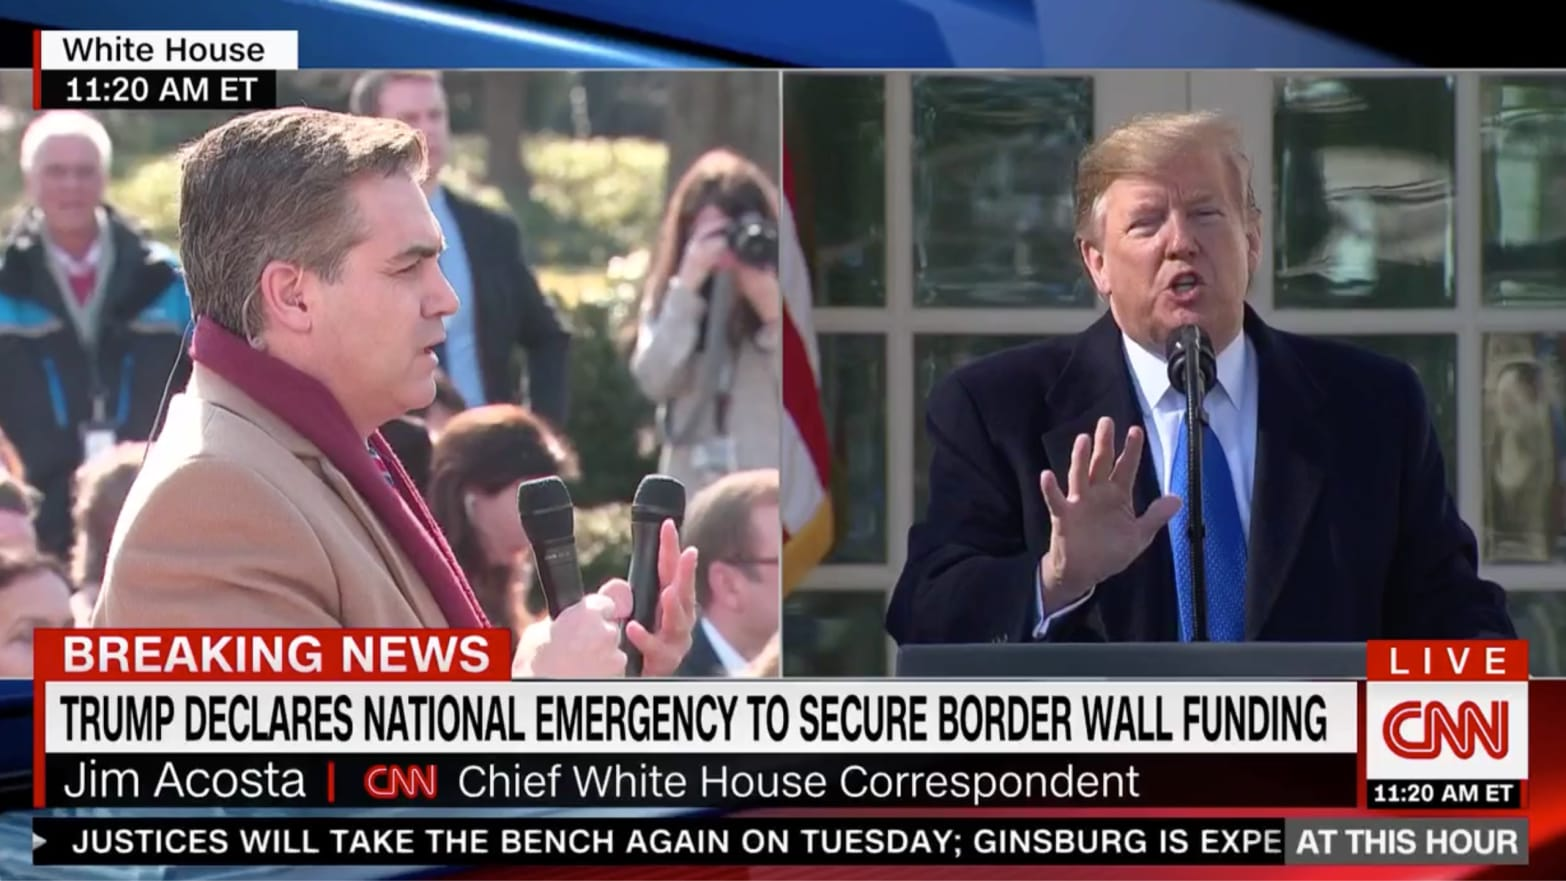 Trump Spats With CNN's Jim Acosta During National Emergency Speech: 'You're Fake News'